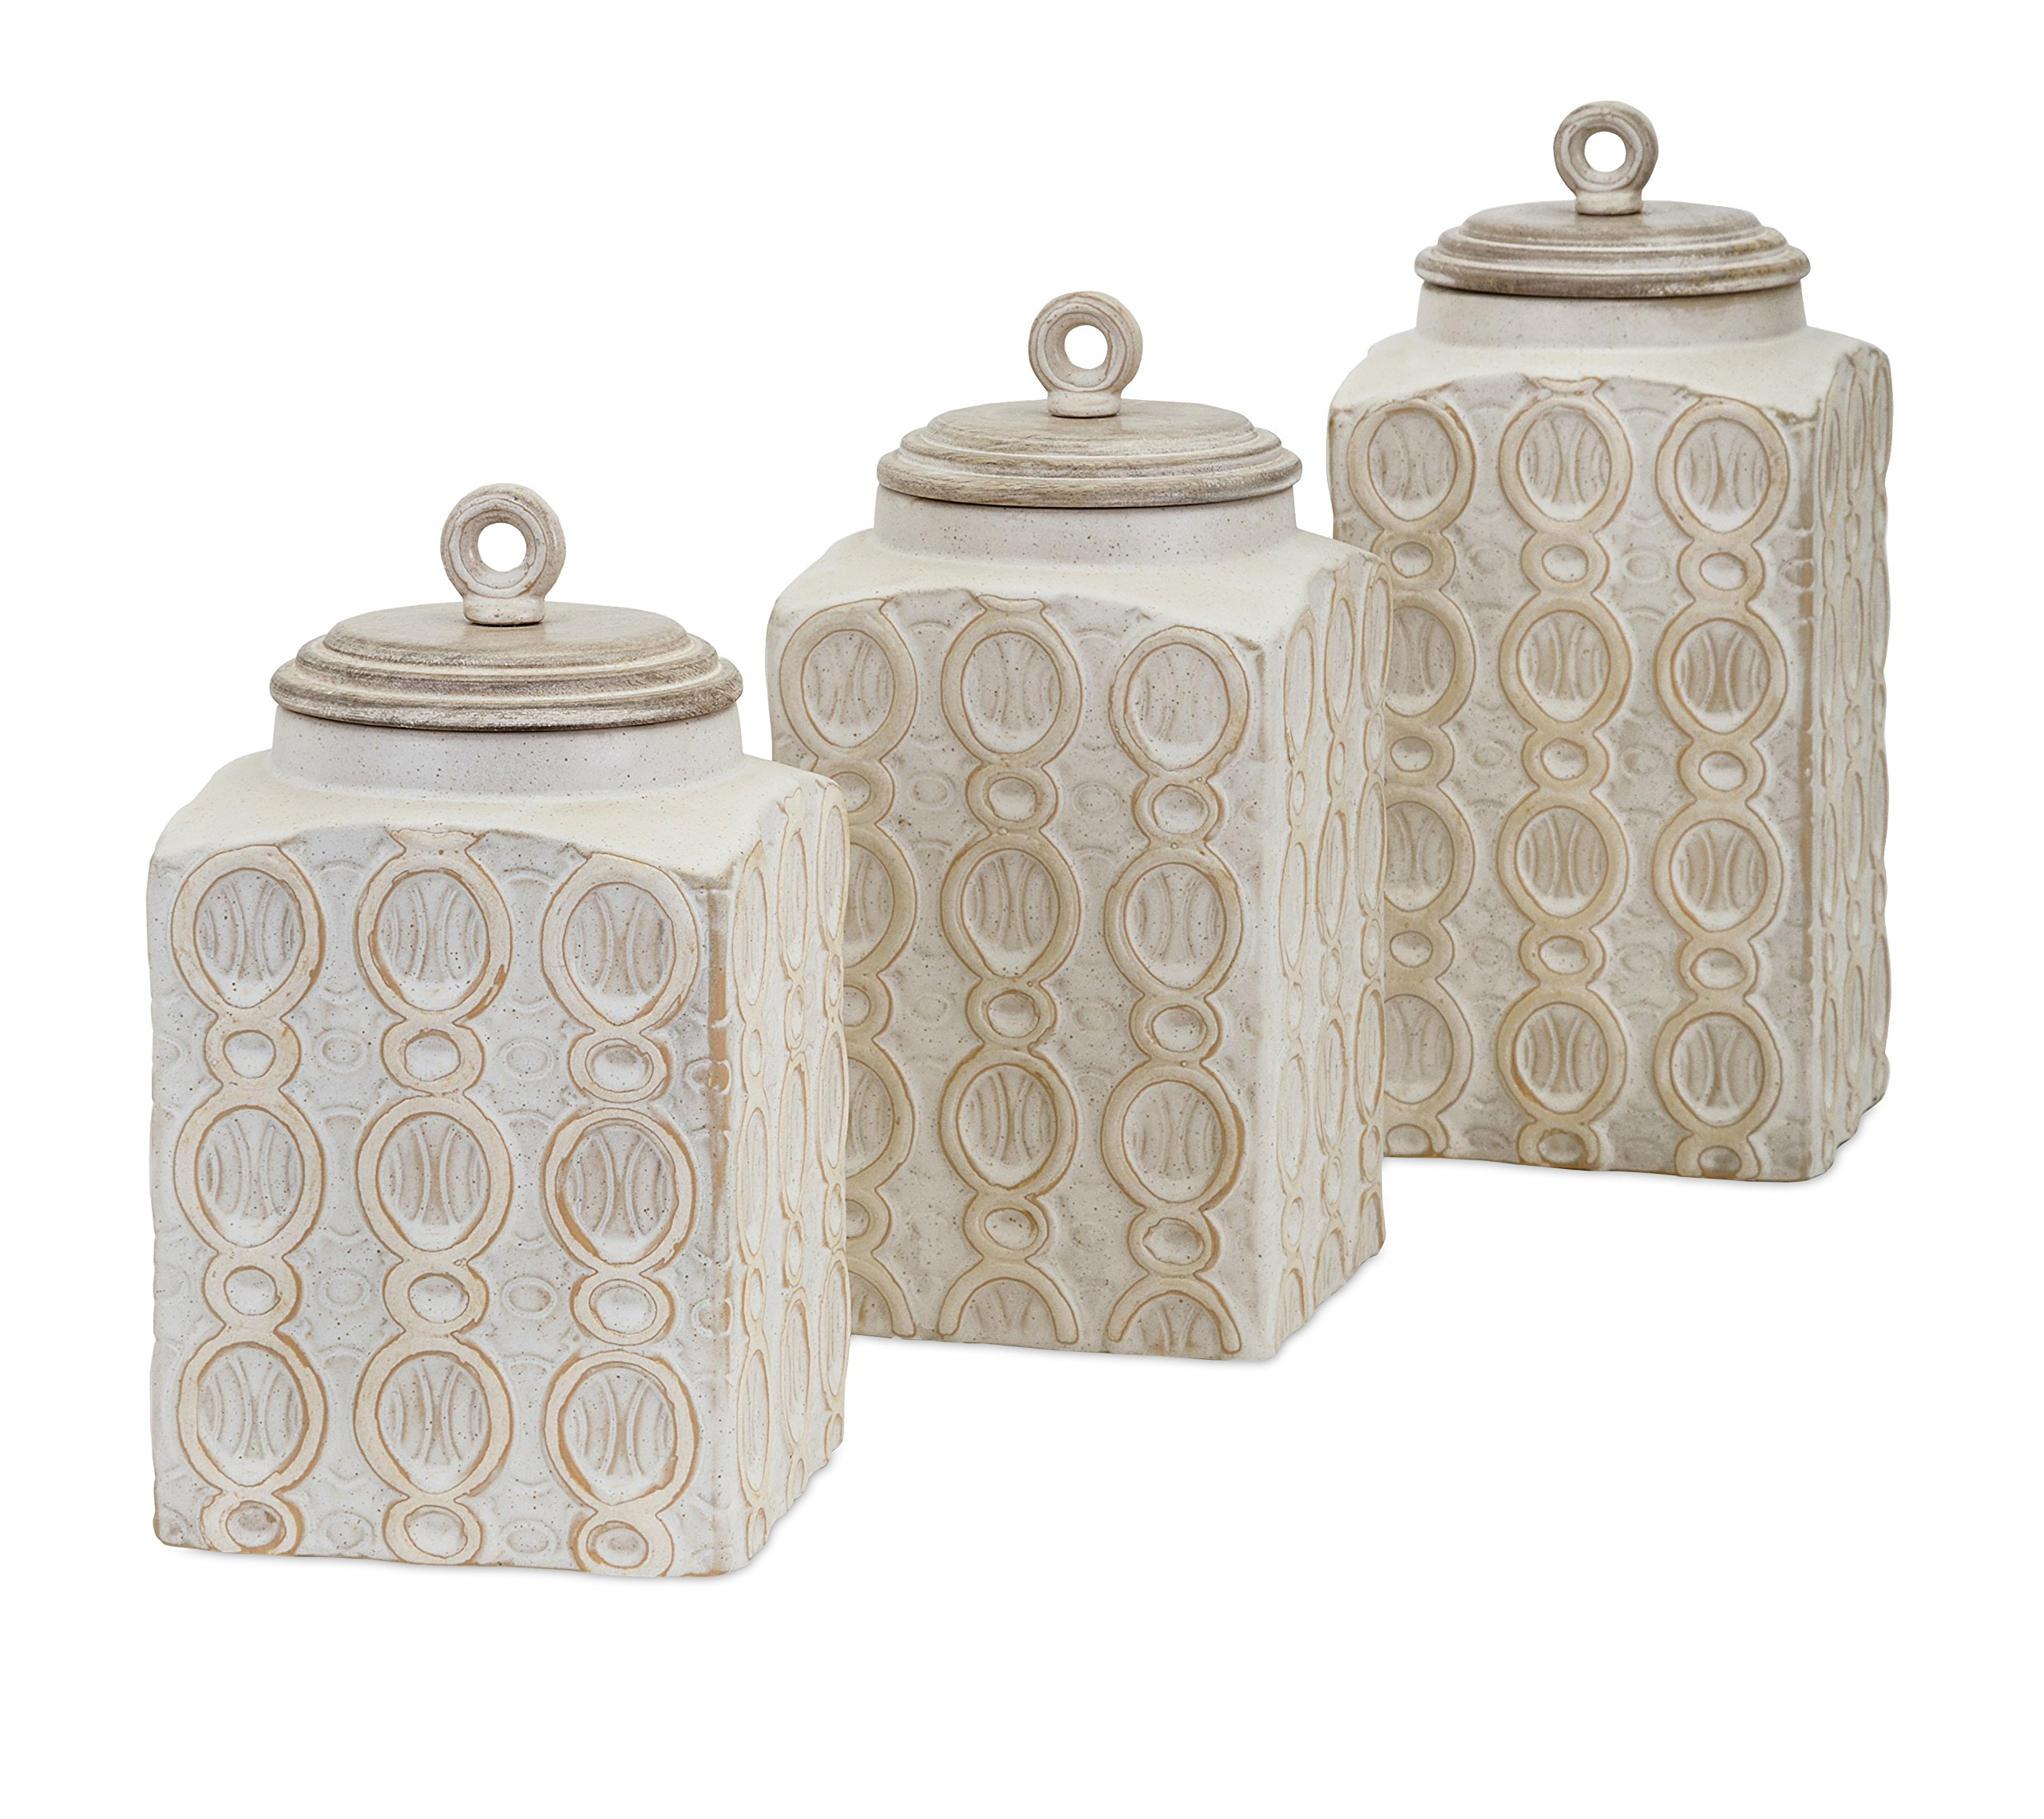 Imax 95792-3 Dreanna Canisters Kitchenware Products (Set of 3) by Imax